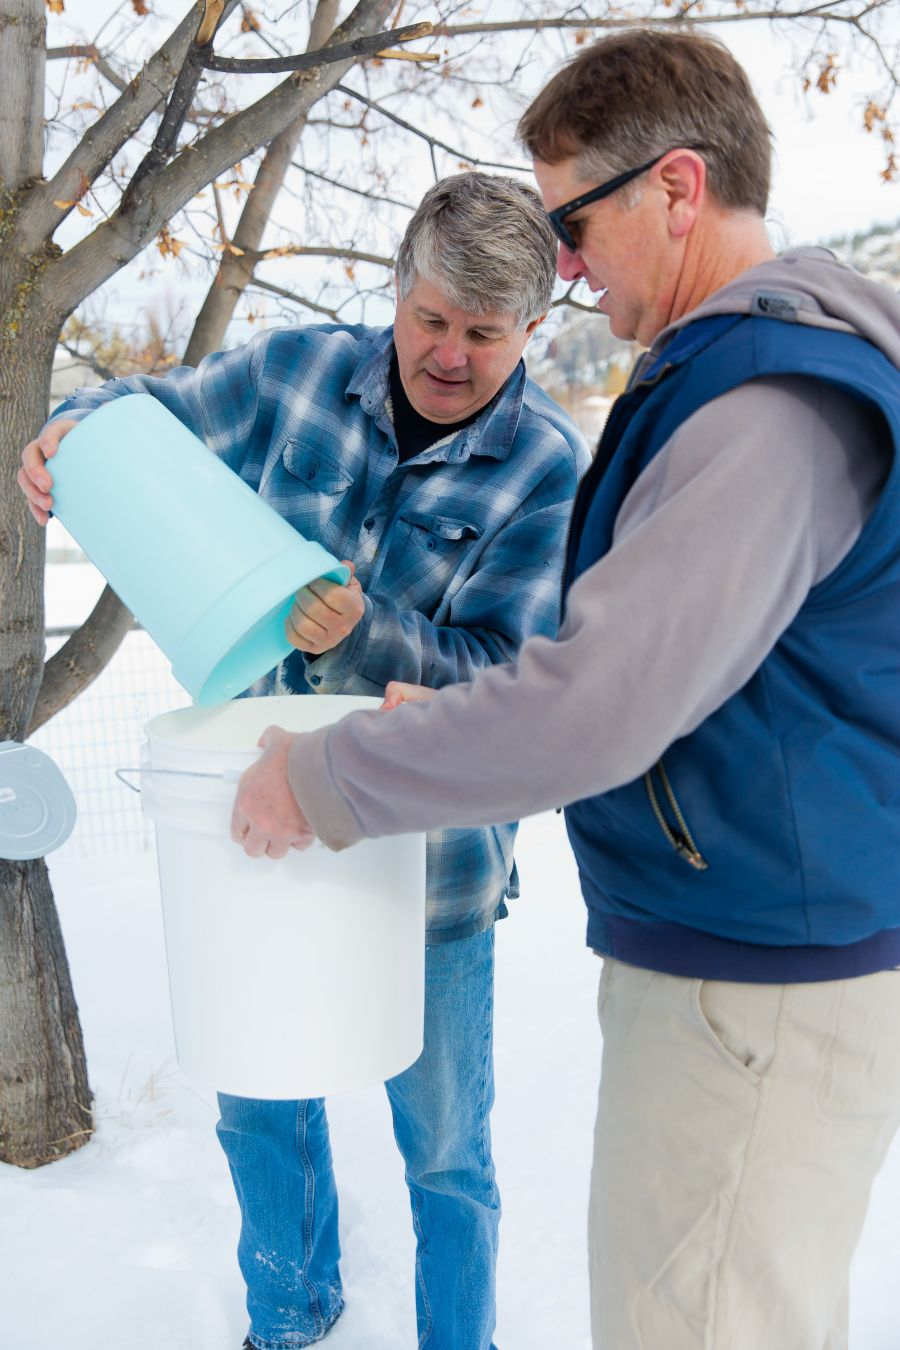 <who>Photo Credit: NowMedia</who>Roch Fortin pours harvested sap water into a bucket held by friend Bernie Ens.